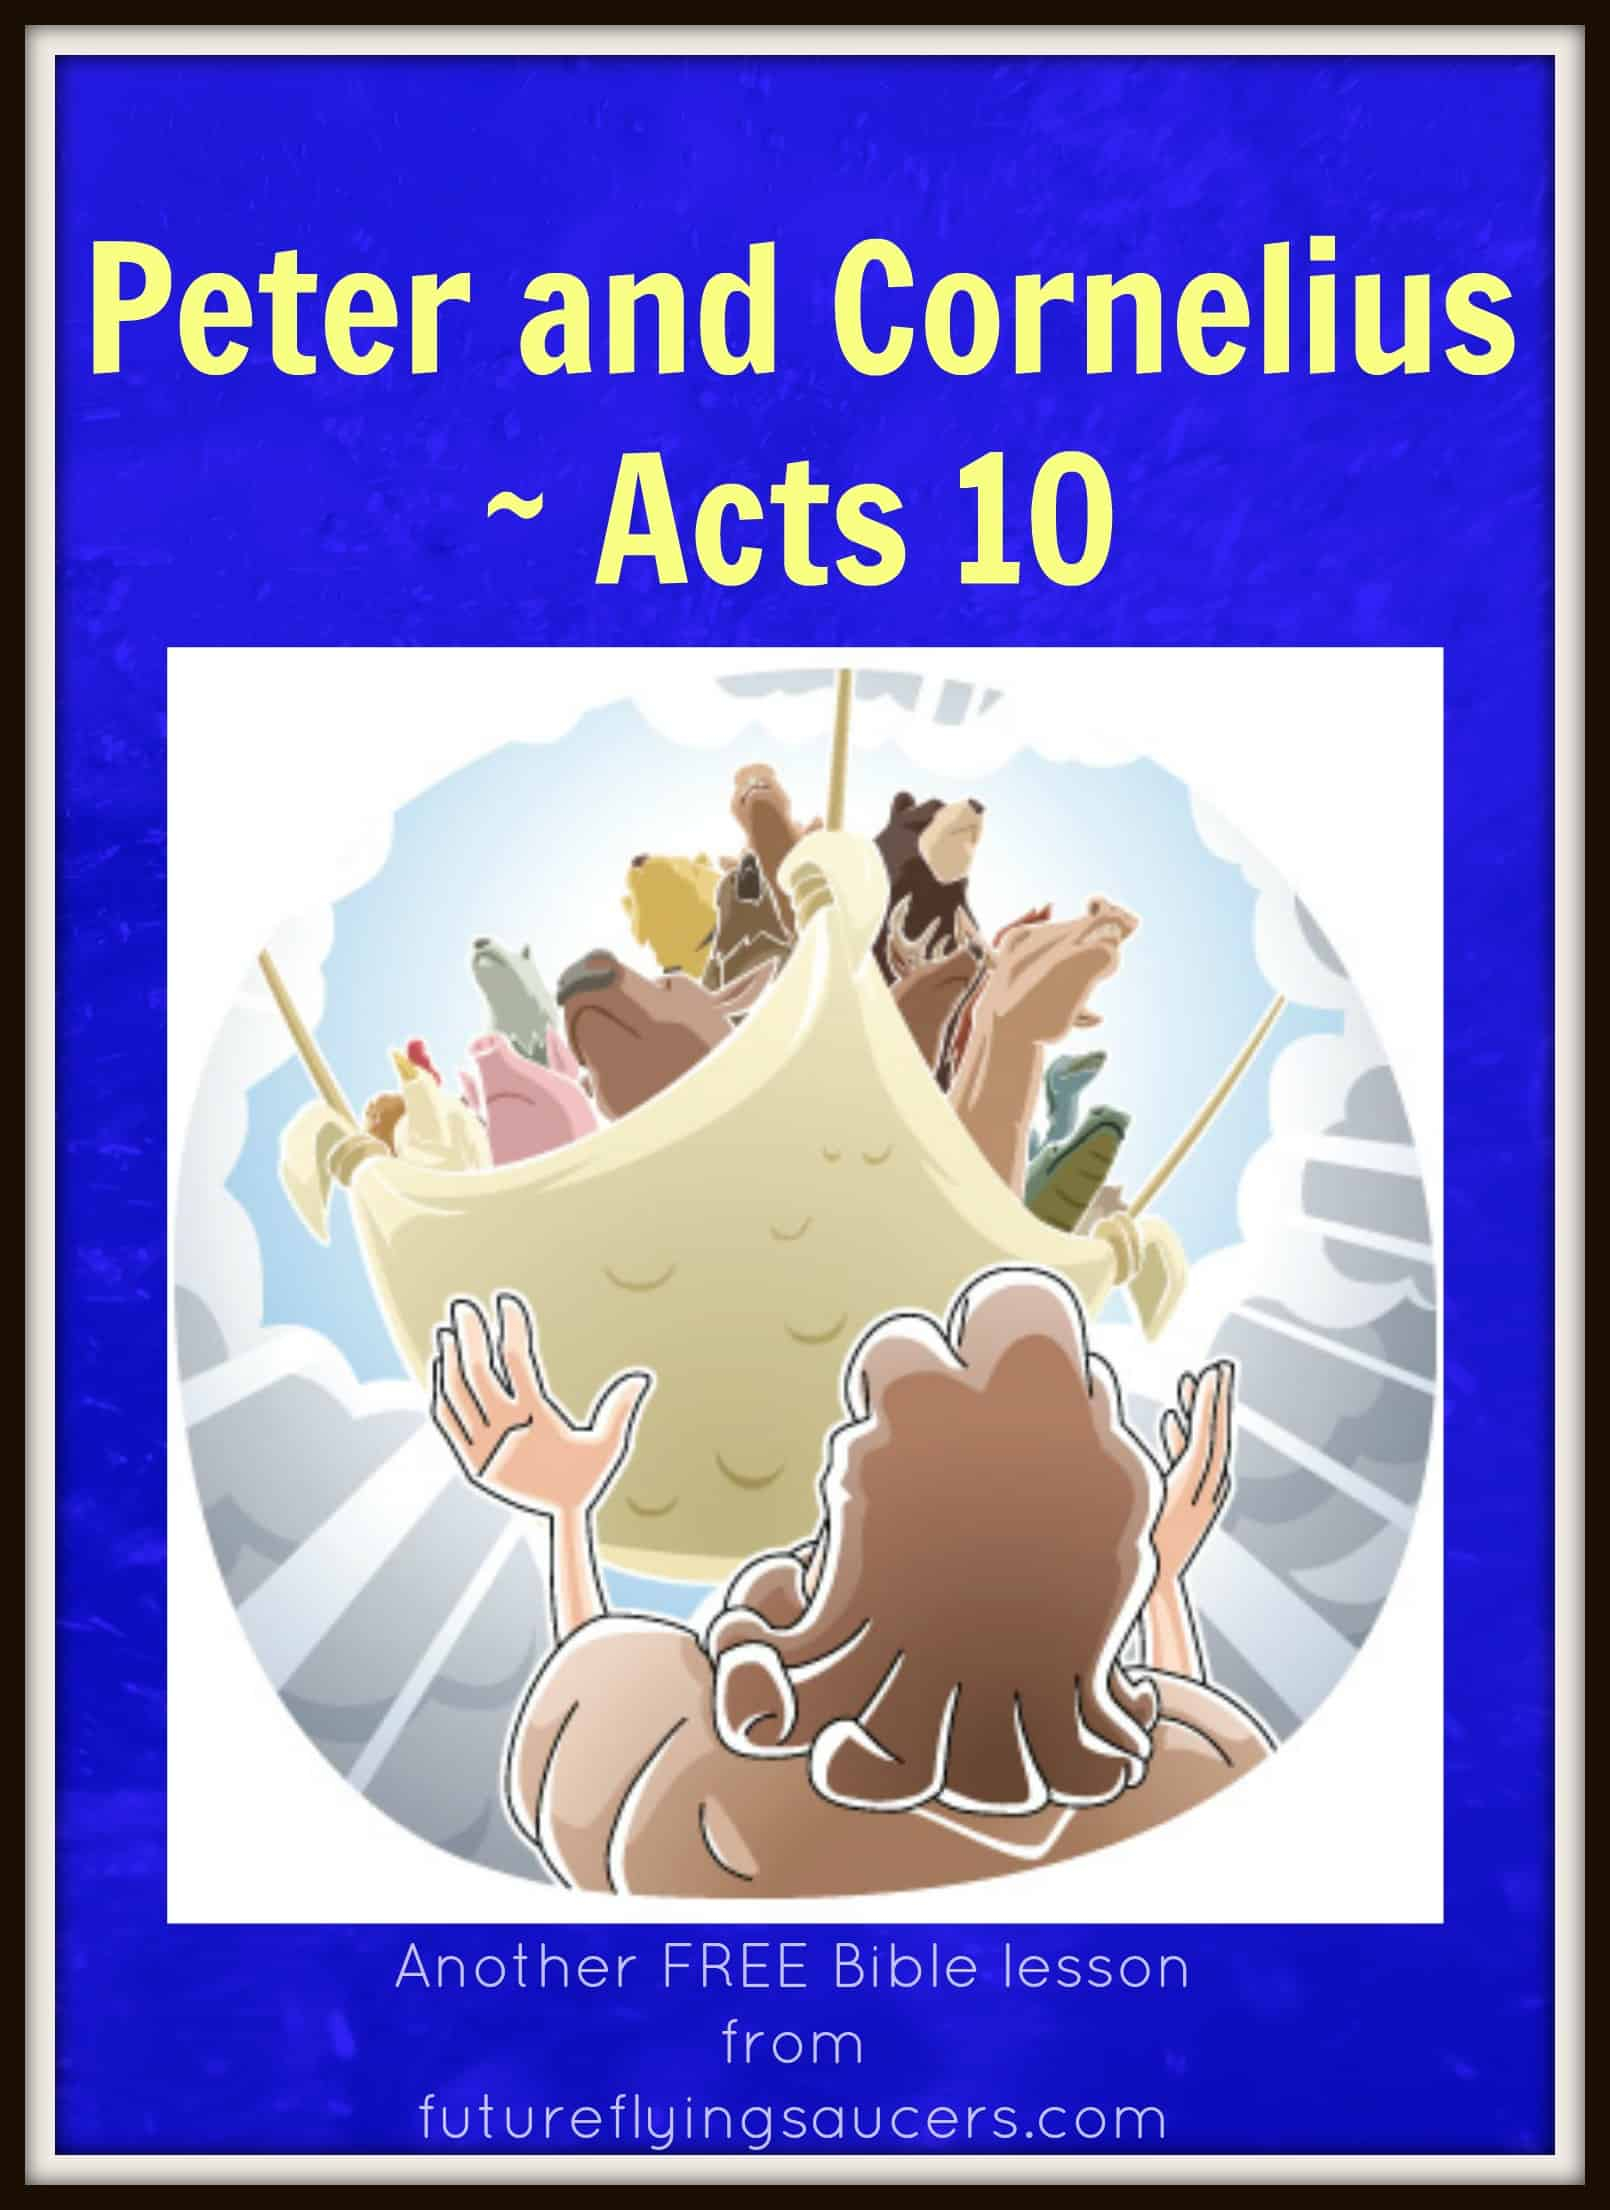 Book of Acts Bible Study for Children's Sunday School